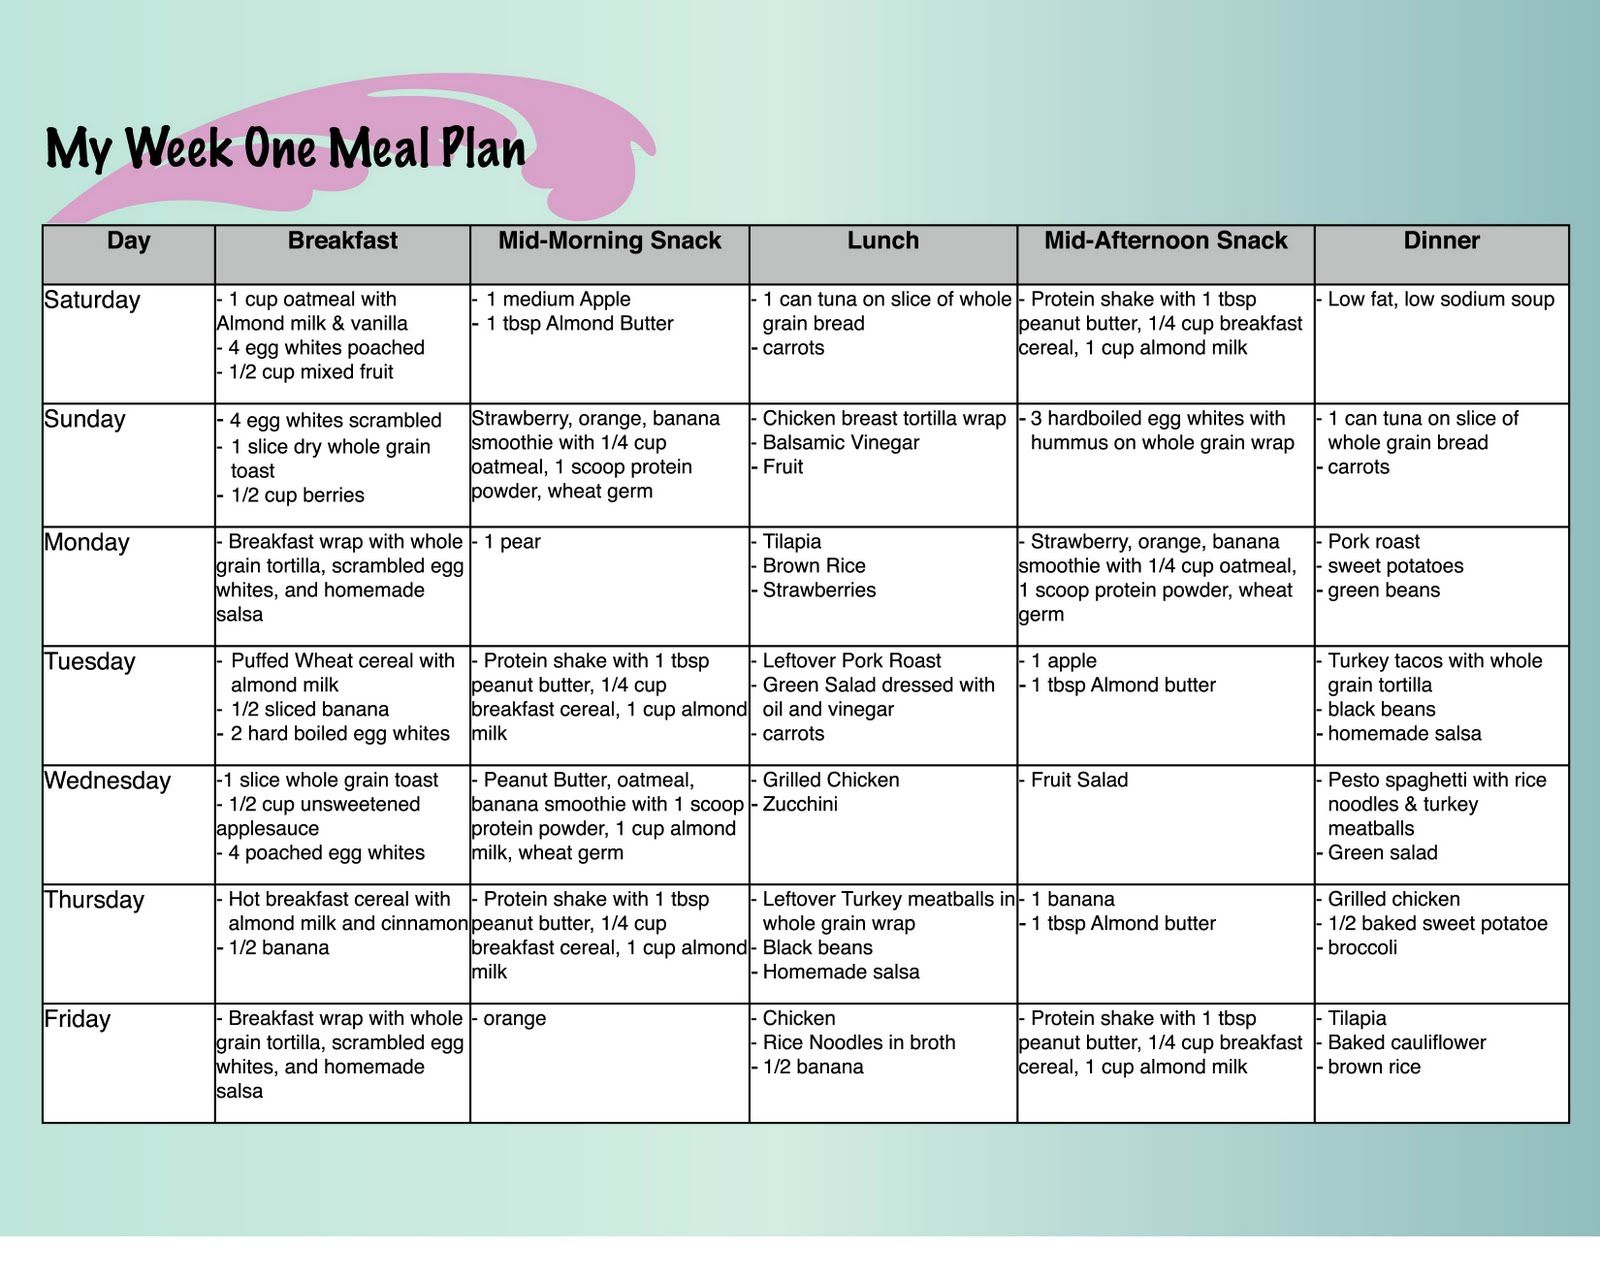 Weight loss tipsdiet plan weight loss tips pinterest clean prepackged meal plans designed specifically for weight loss purposes are becoming more and more popular nvjuhfo Images